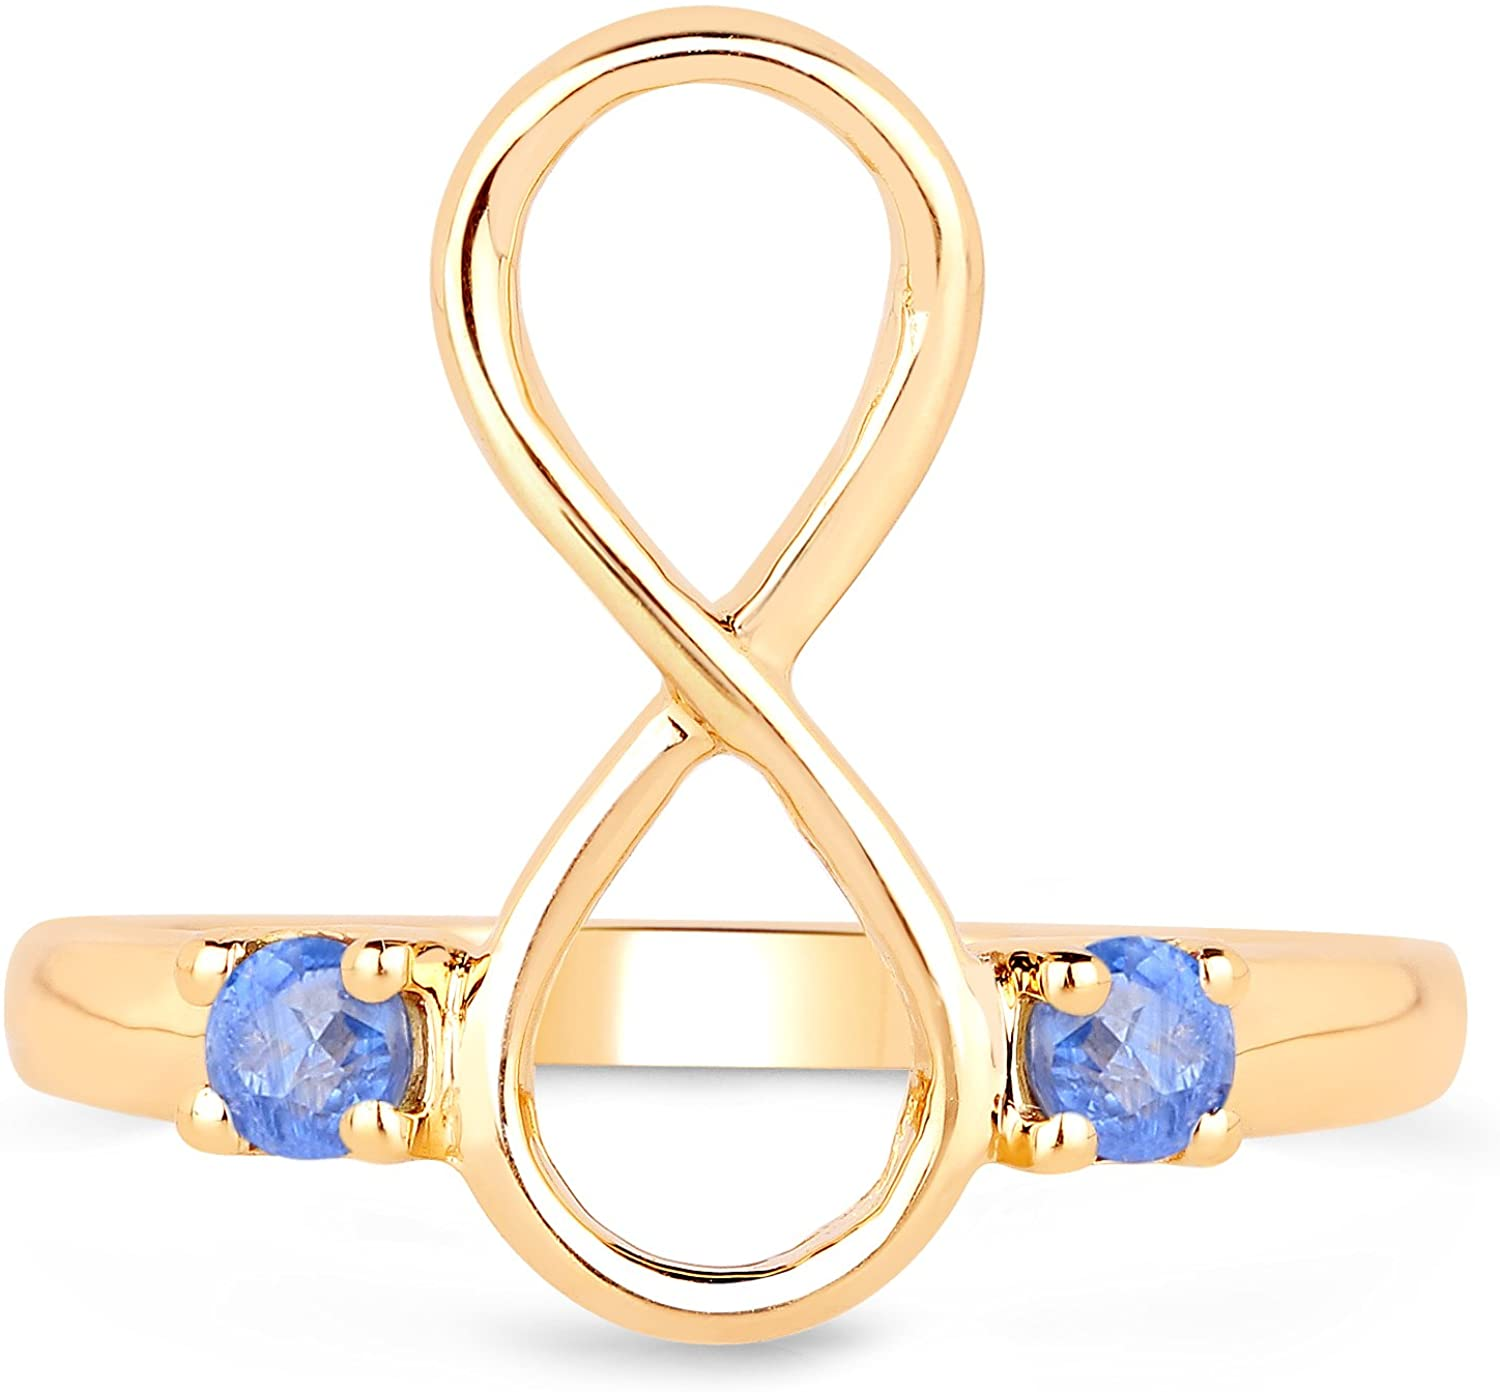 LoveHuang 0.25 Carats Genuine Kyanite Infinity Ring Solid .925 Sterling Silver With 18KT Yellow Gold Plating